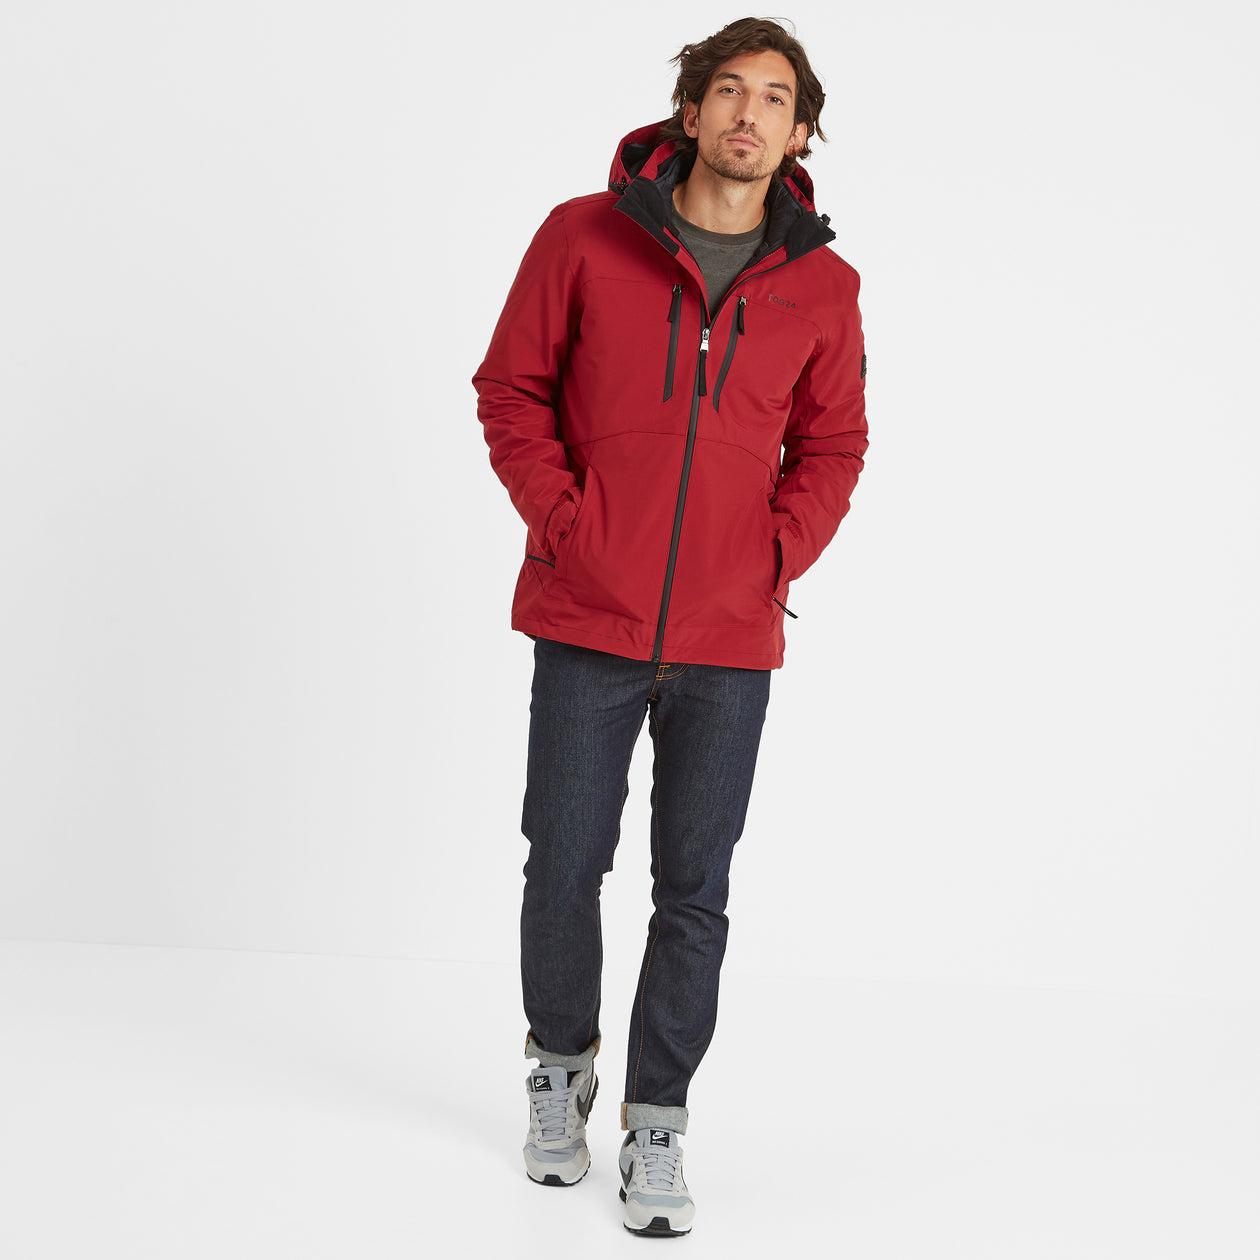 Denton Mens Waterproof 3-In-1 Jacket - Chilli Red image 4